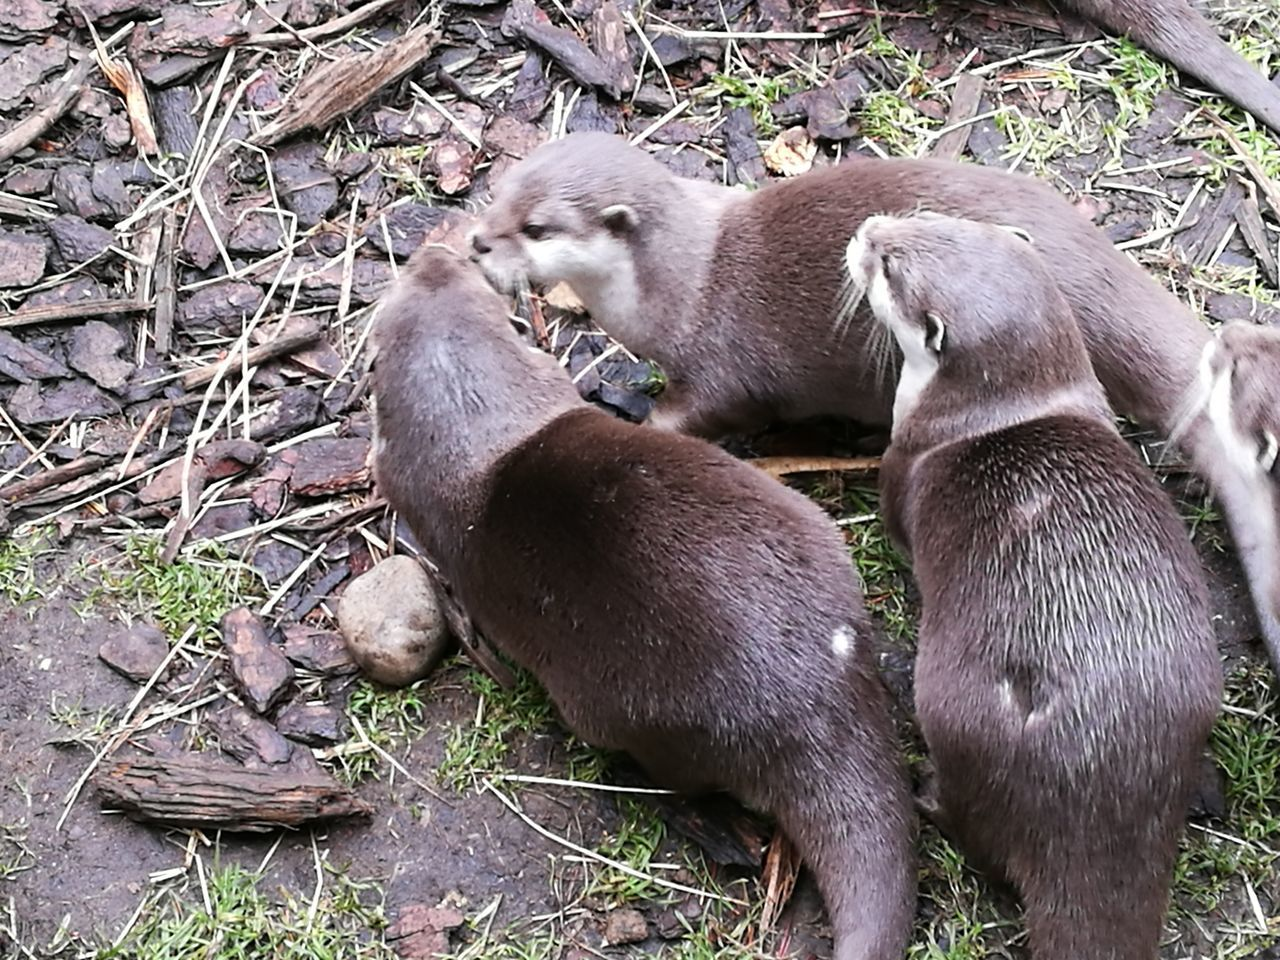 Animal Themes Mammal Togetherness Outdoors Young Animal Animal Family No People Nature Animal Wildlife Otter Otters Otters! Love Love ♥ Beauty In Nature Play